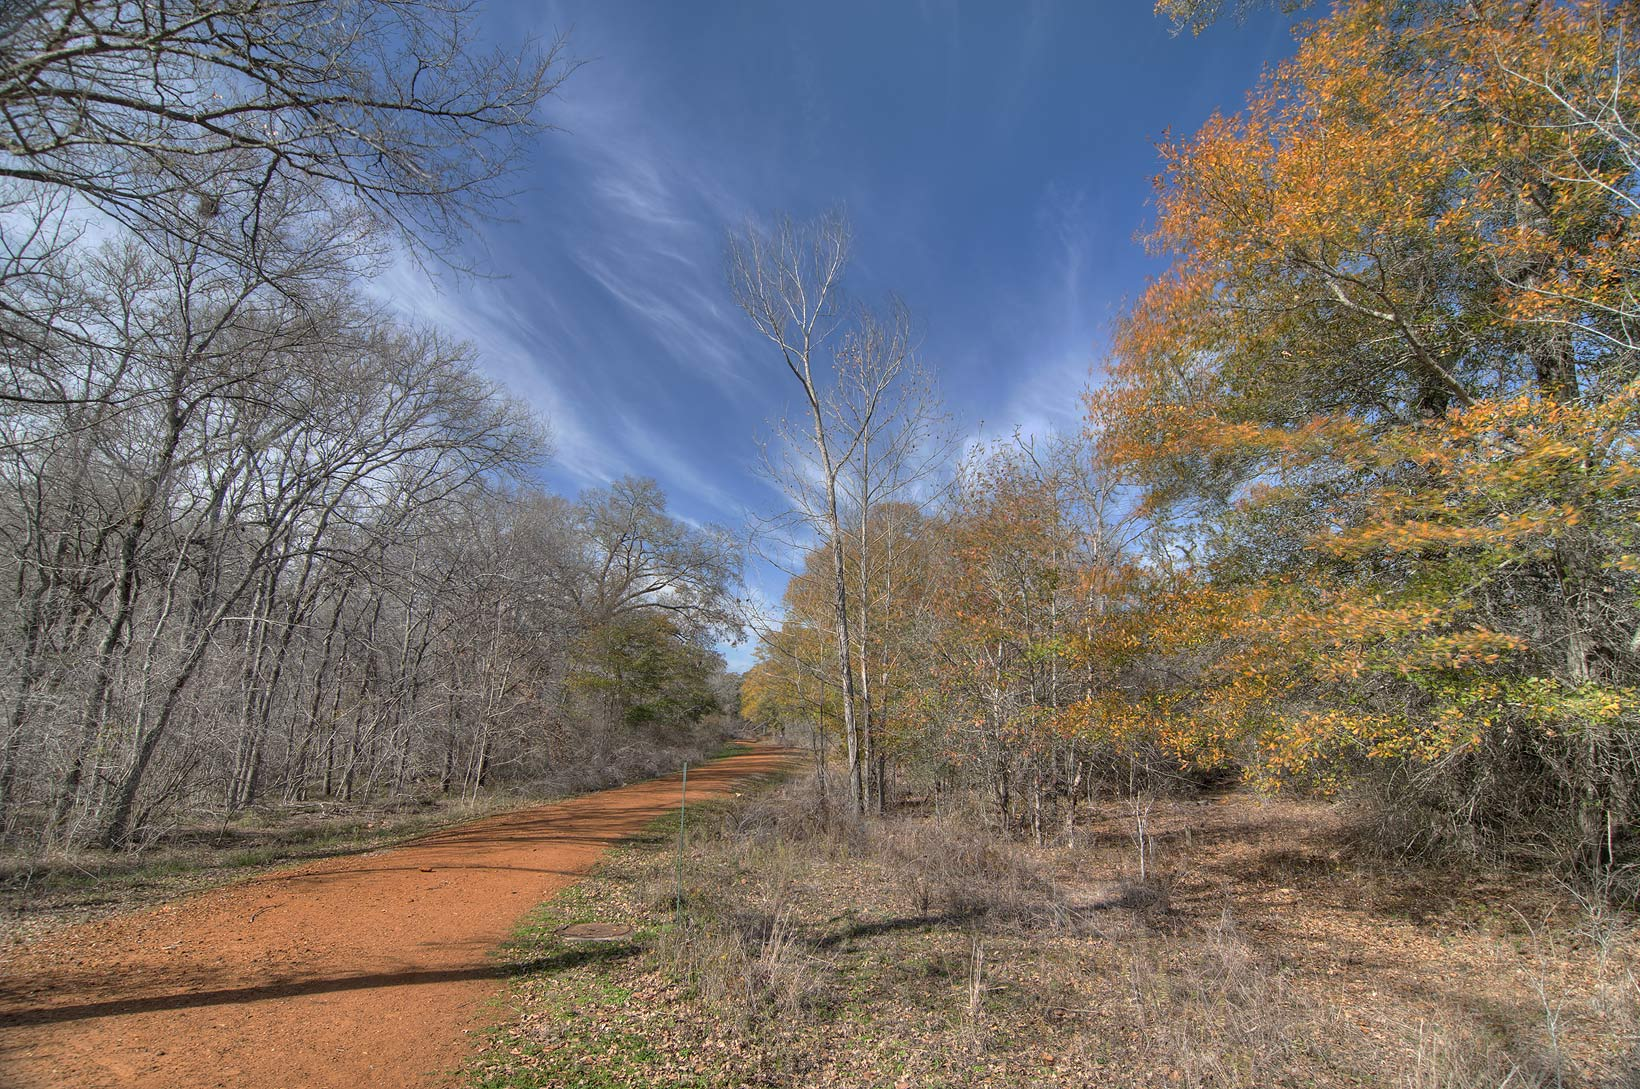 Road in Lick Creek Park. College Station, Texas